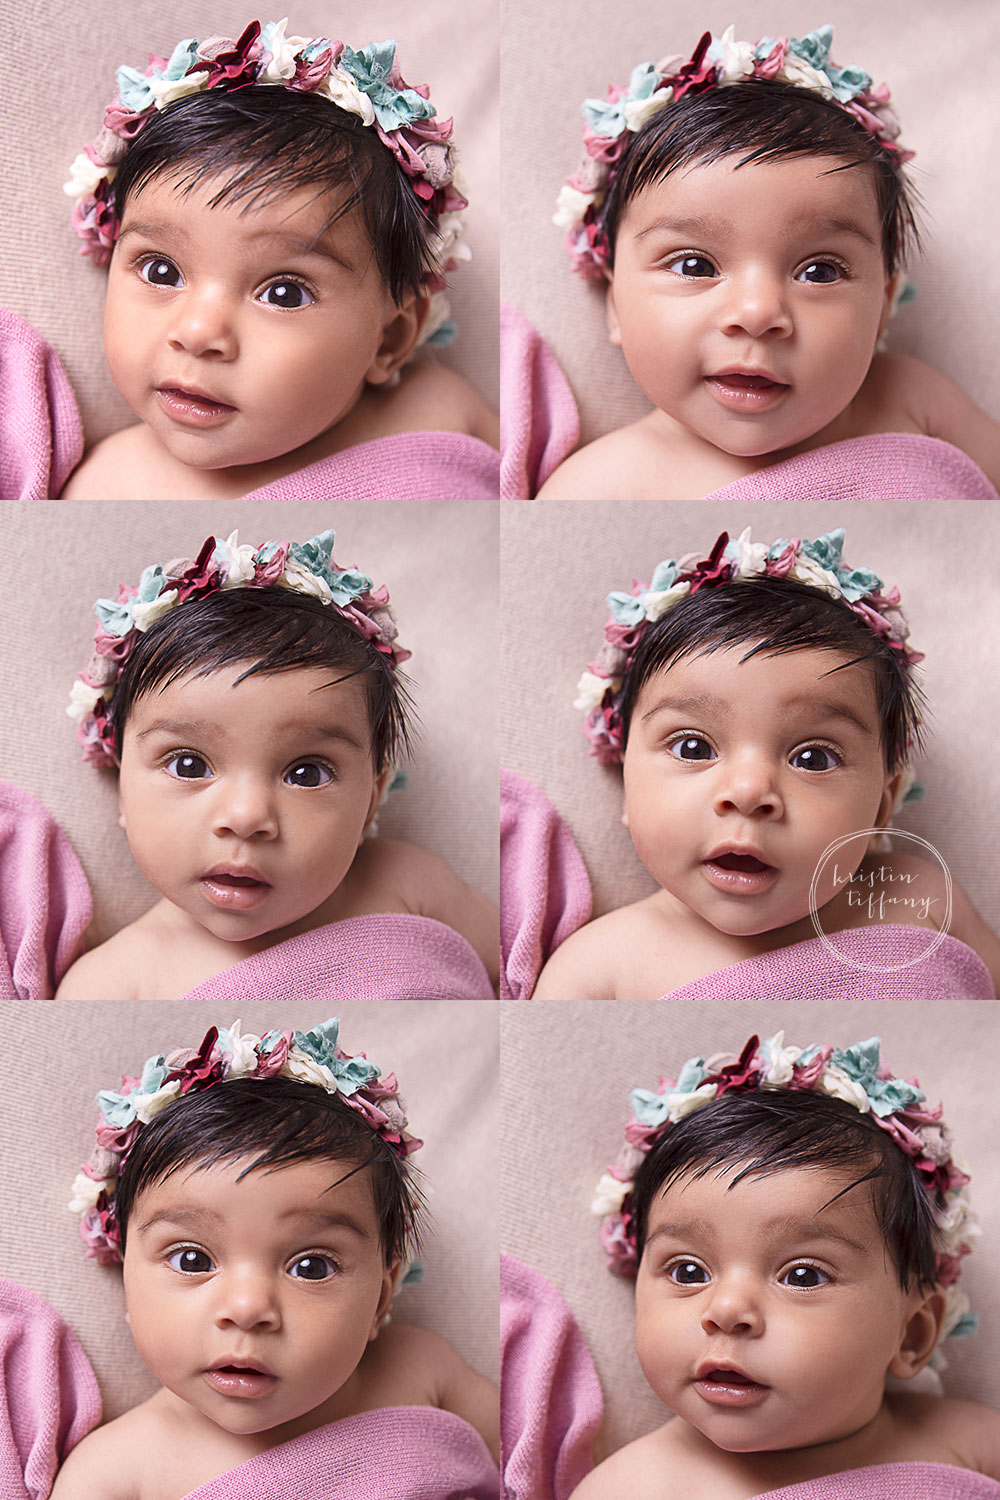 a photo collage of a baby girls expressions